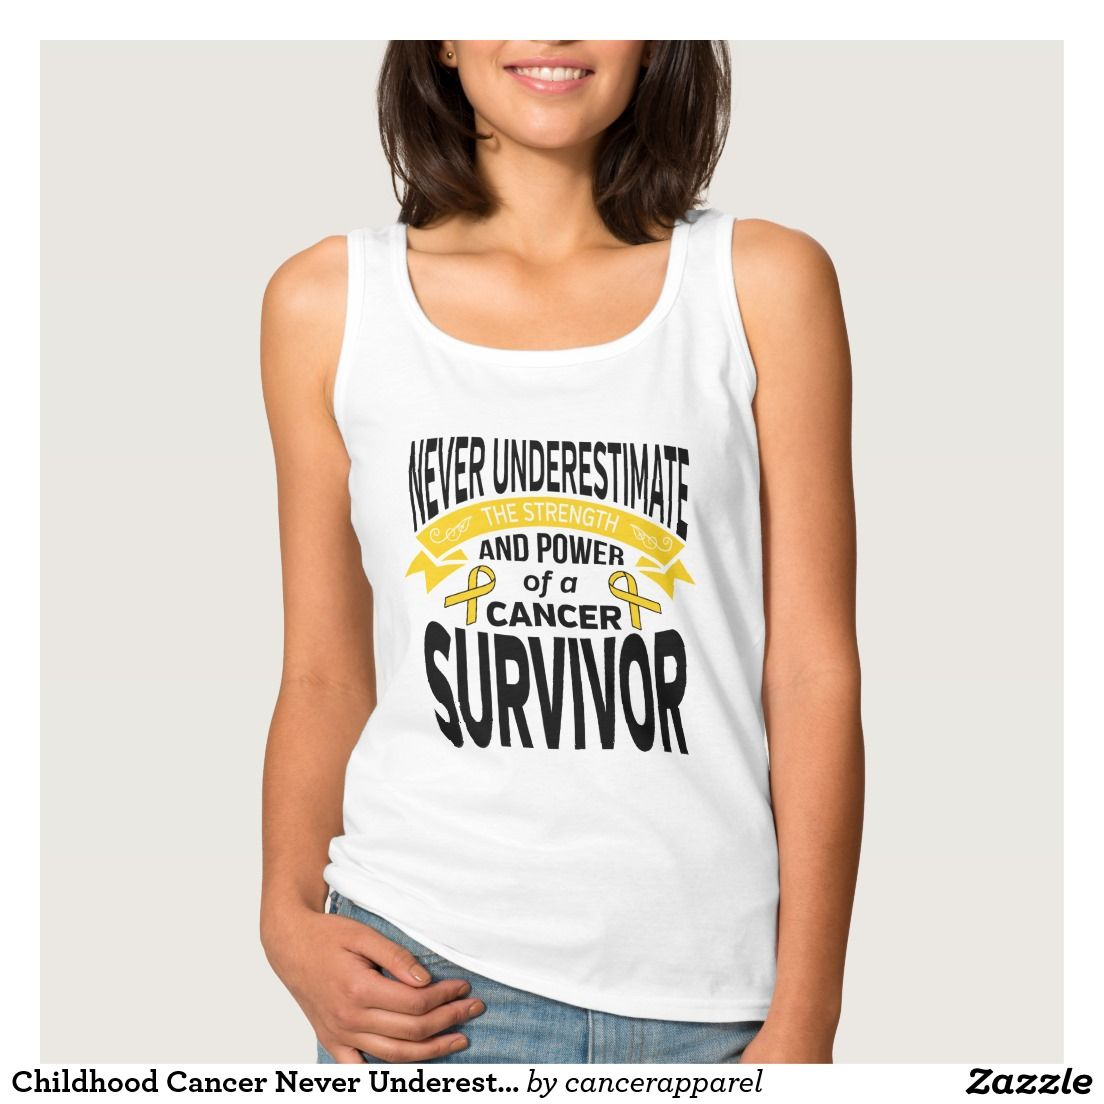 Childhood Cancer Never Underestimate Strength Basic Tank Top by cancerapparelgifts.com #cancerawareness #cancershirts